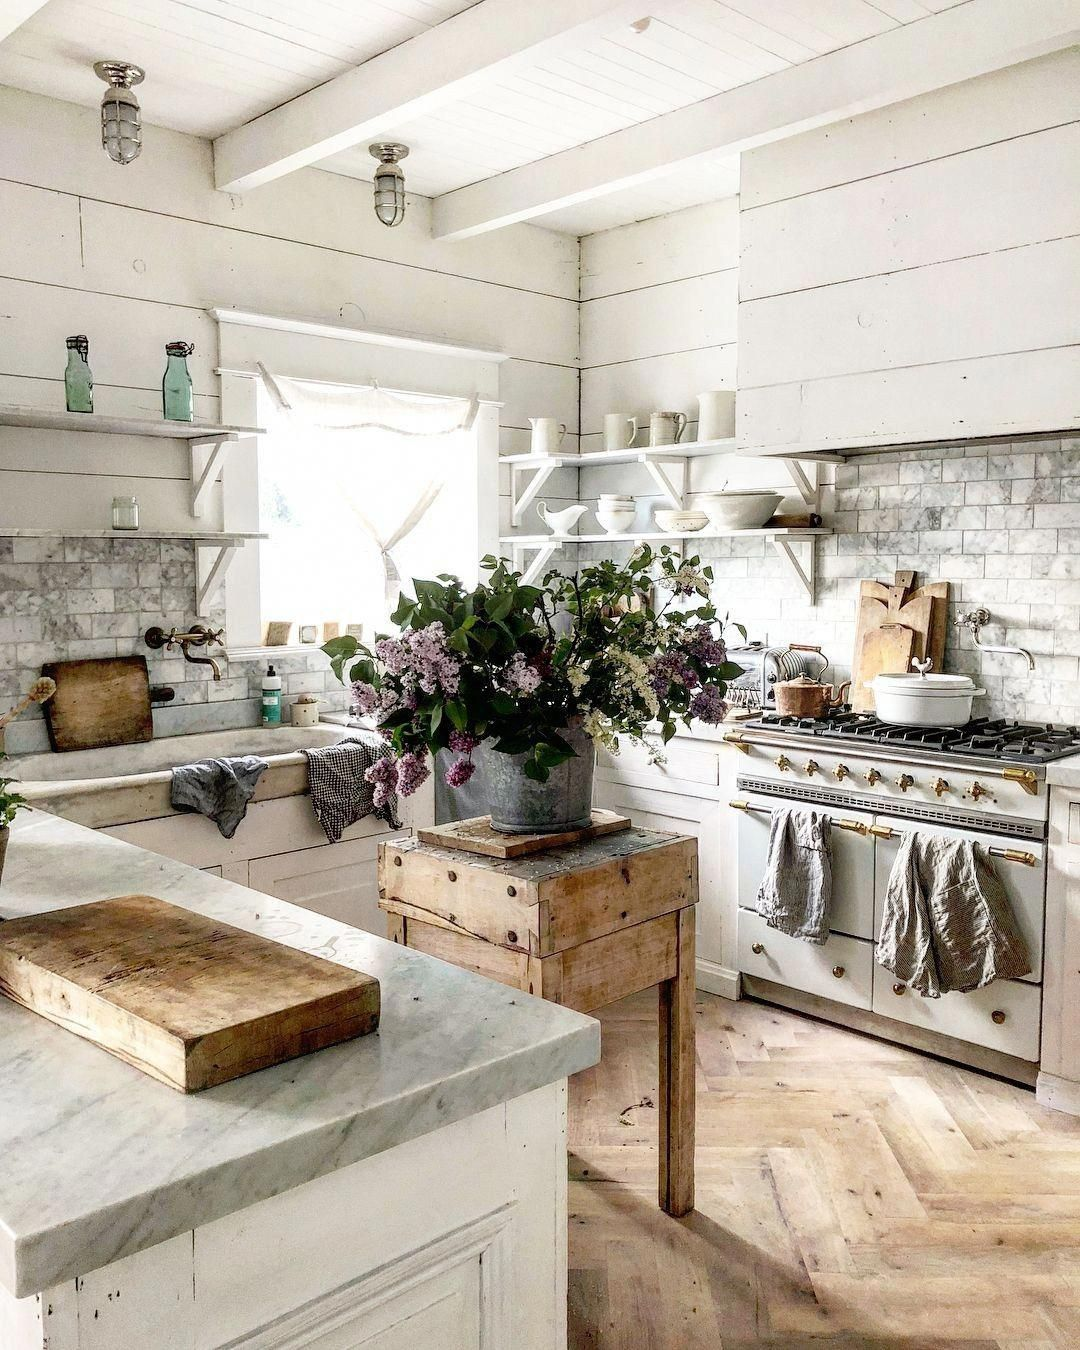 33 Charming French Kitchen Decor Inspirational Ideas 18 Villagehomedecoration Country Kitchen Decor Kitchen Design Countertops Farmhouse Kitchen Countertops